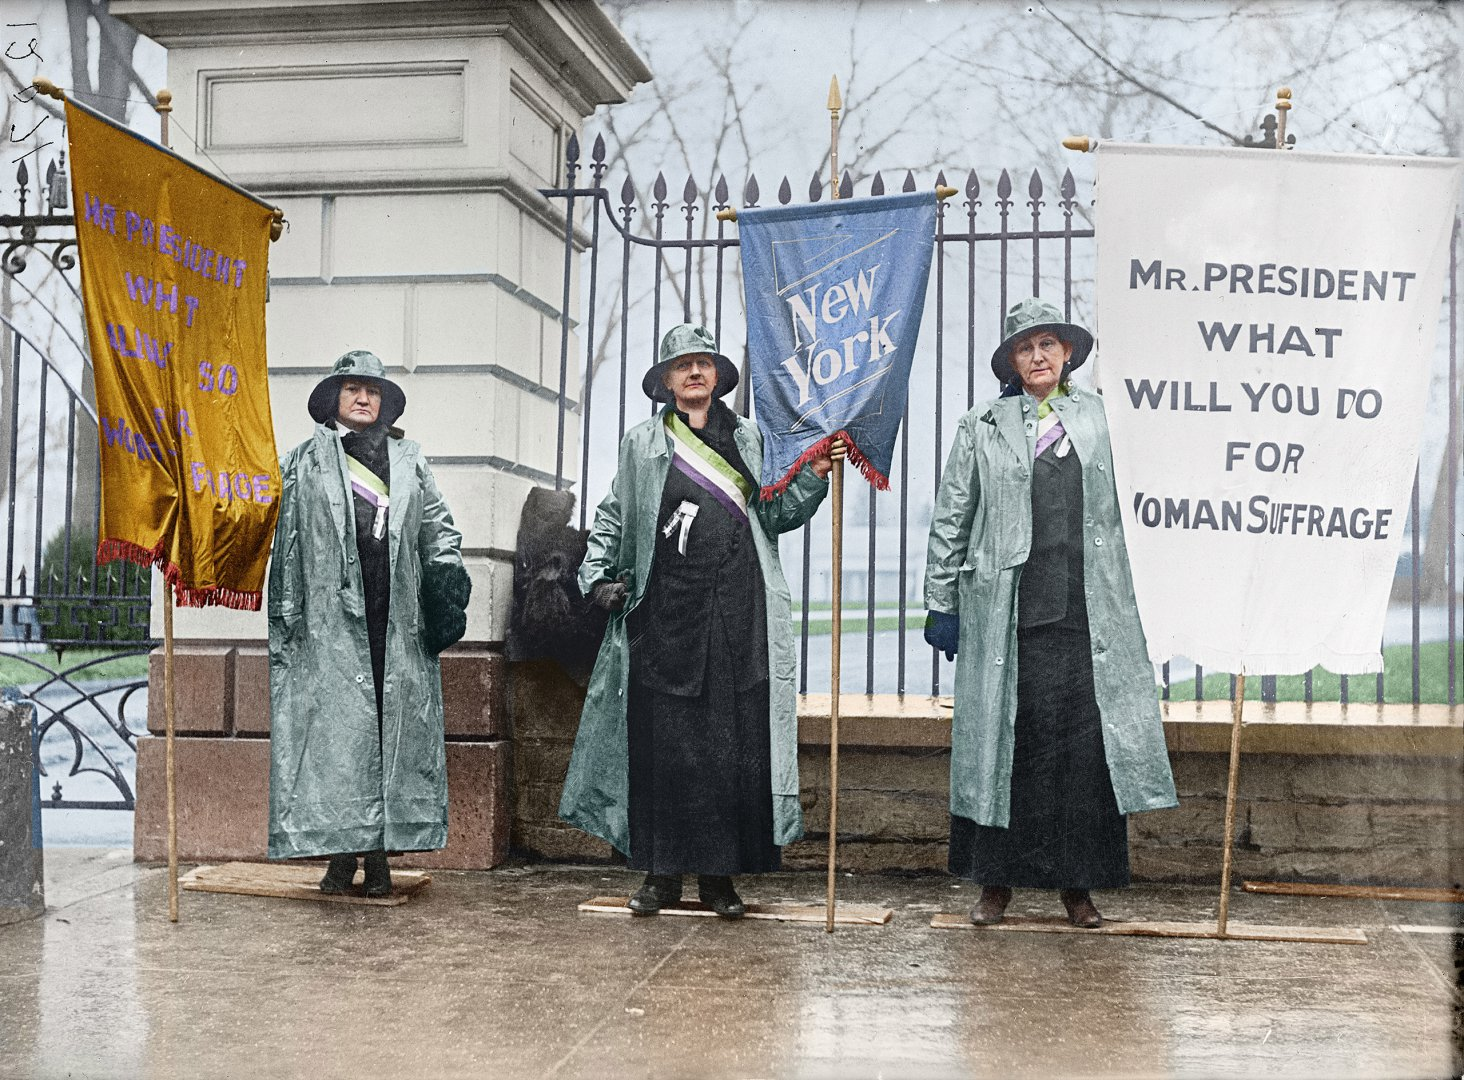 Suffragists Picketing the White House, 1917